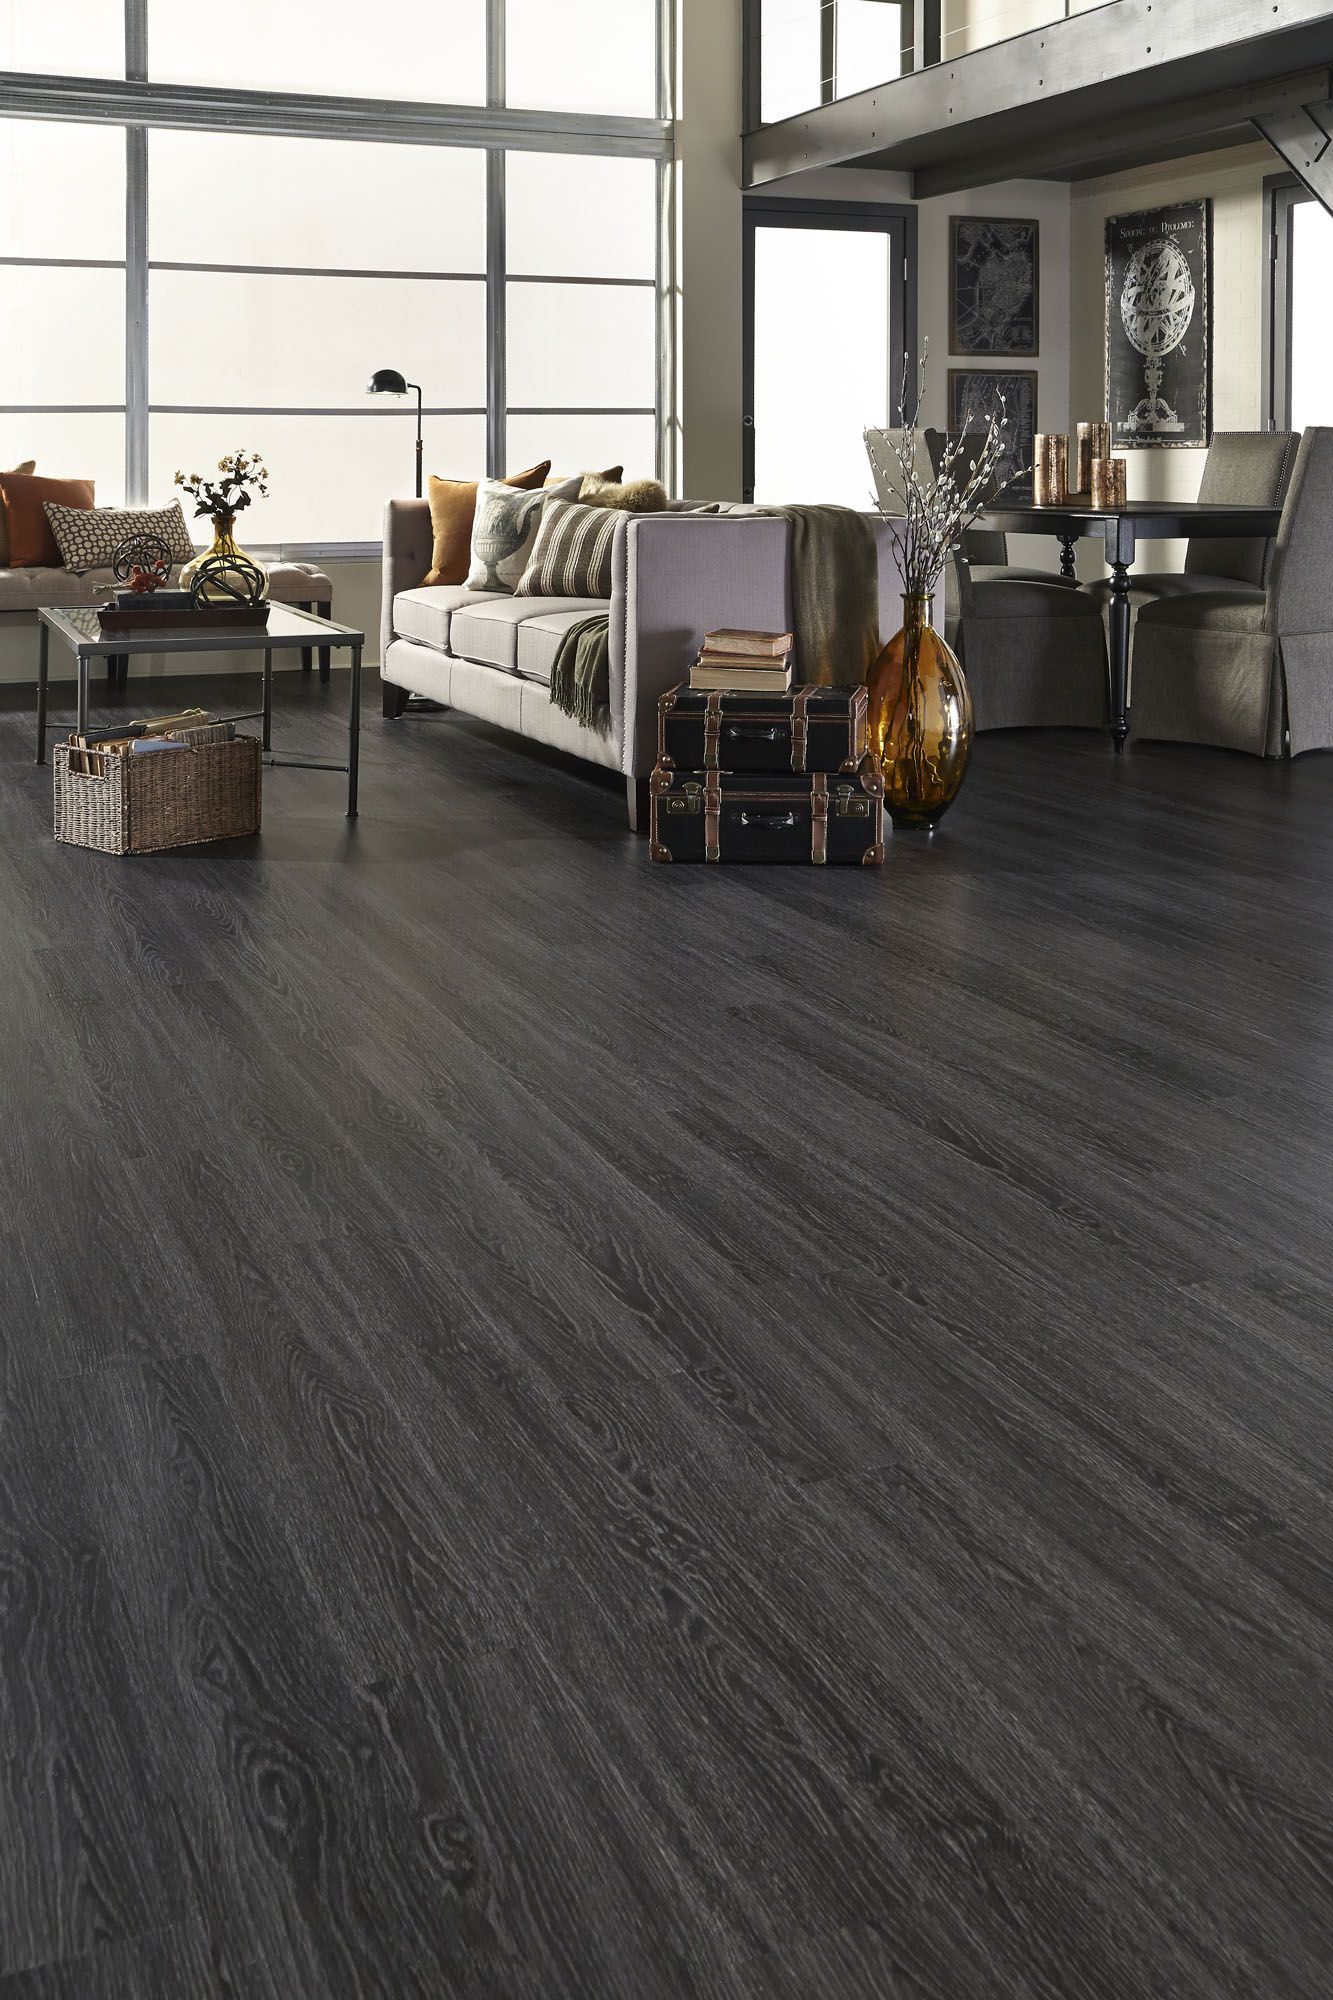 It S Part Of The Worry Proof Collection Floors That Can Stand Up To Life Spills And Splashes Allowing You Bring Latest Wood Look Trends